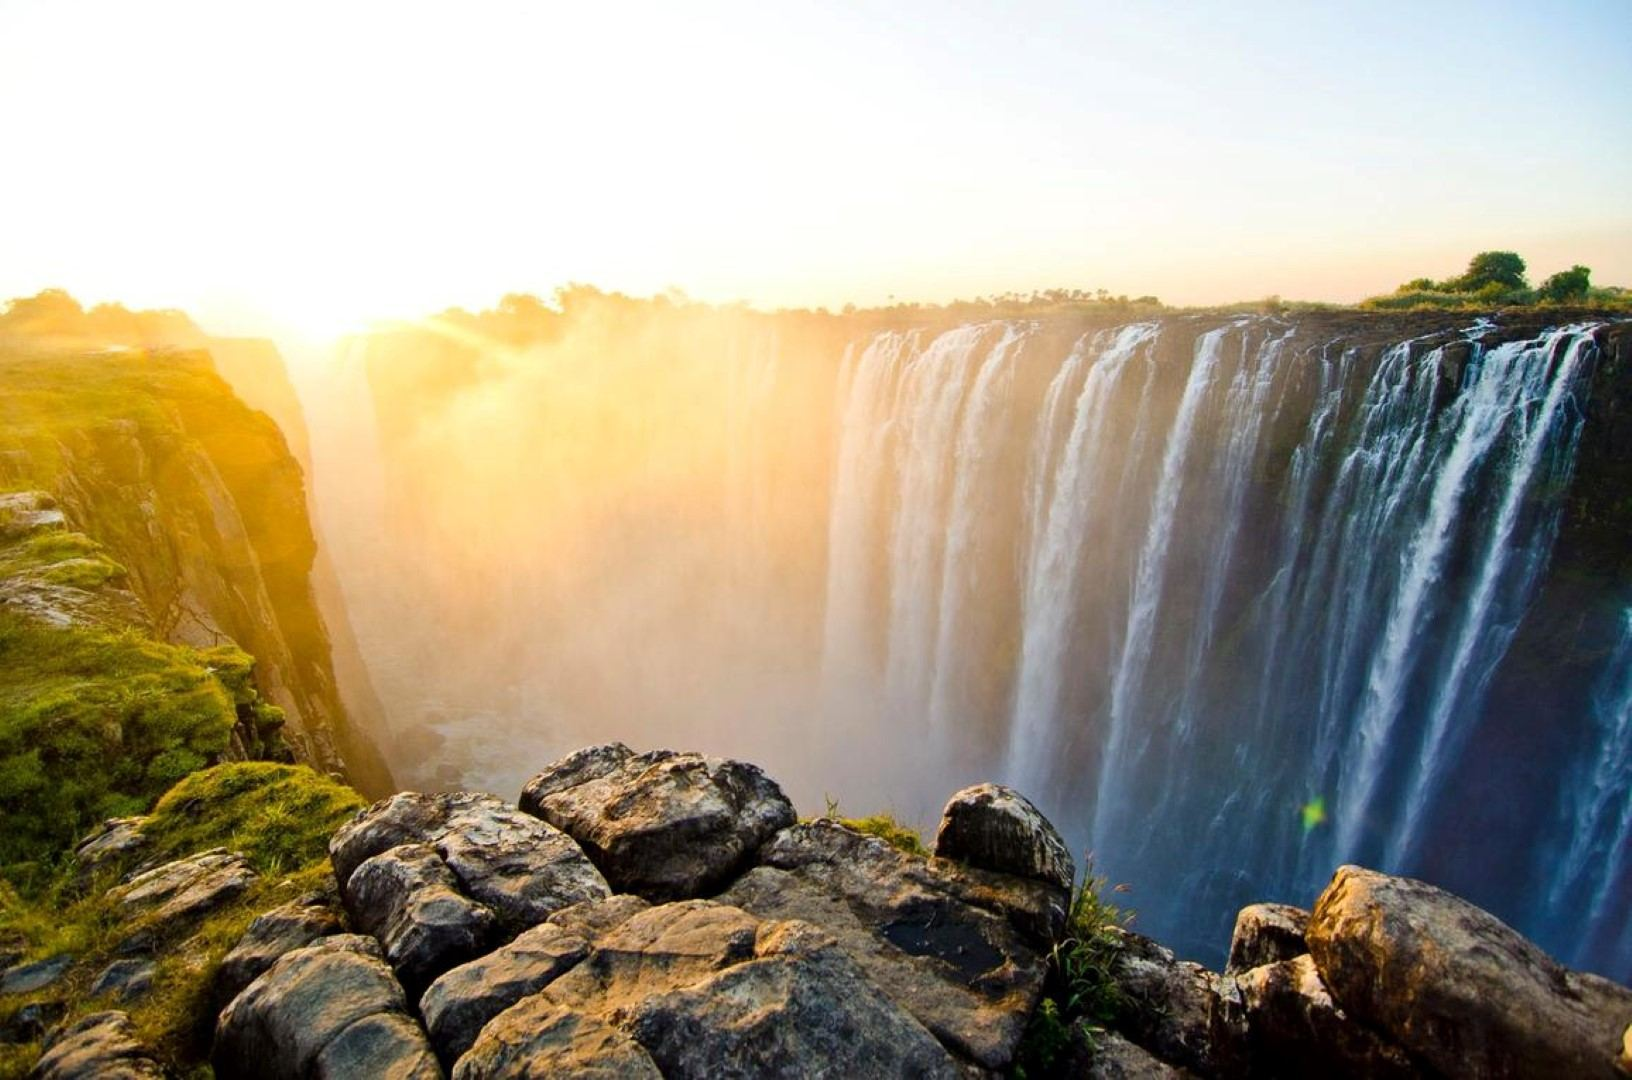 Victoria Falls is one of the best sights on the planet